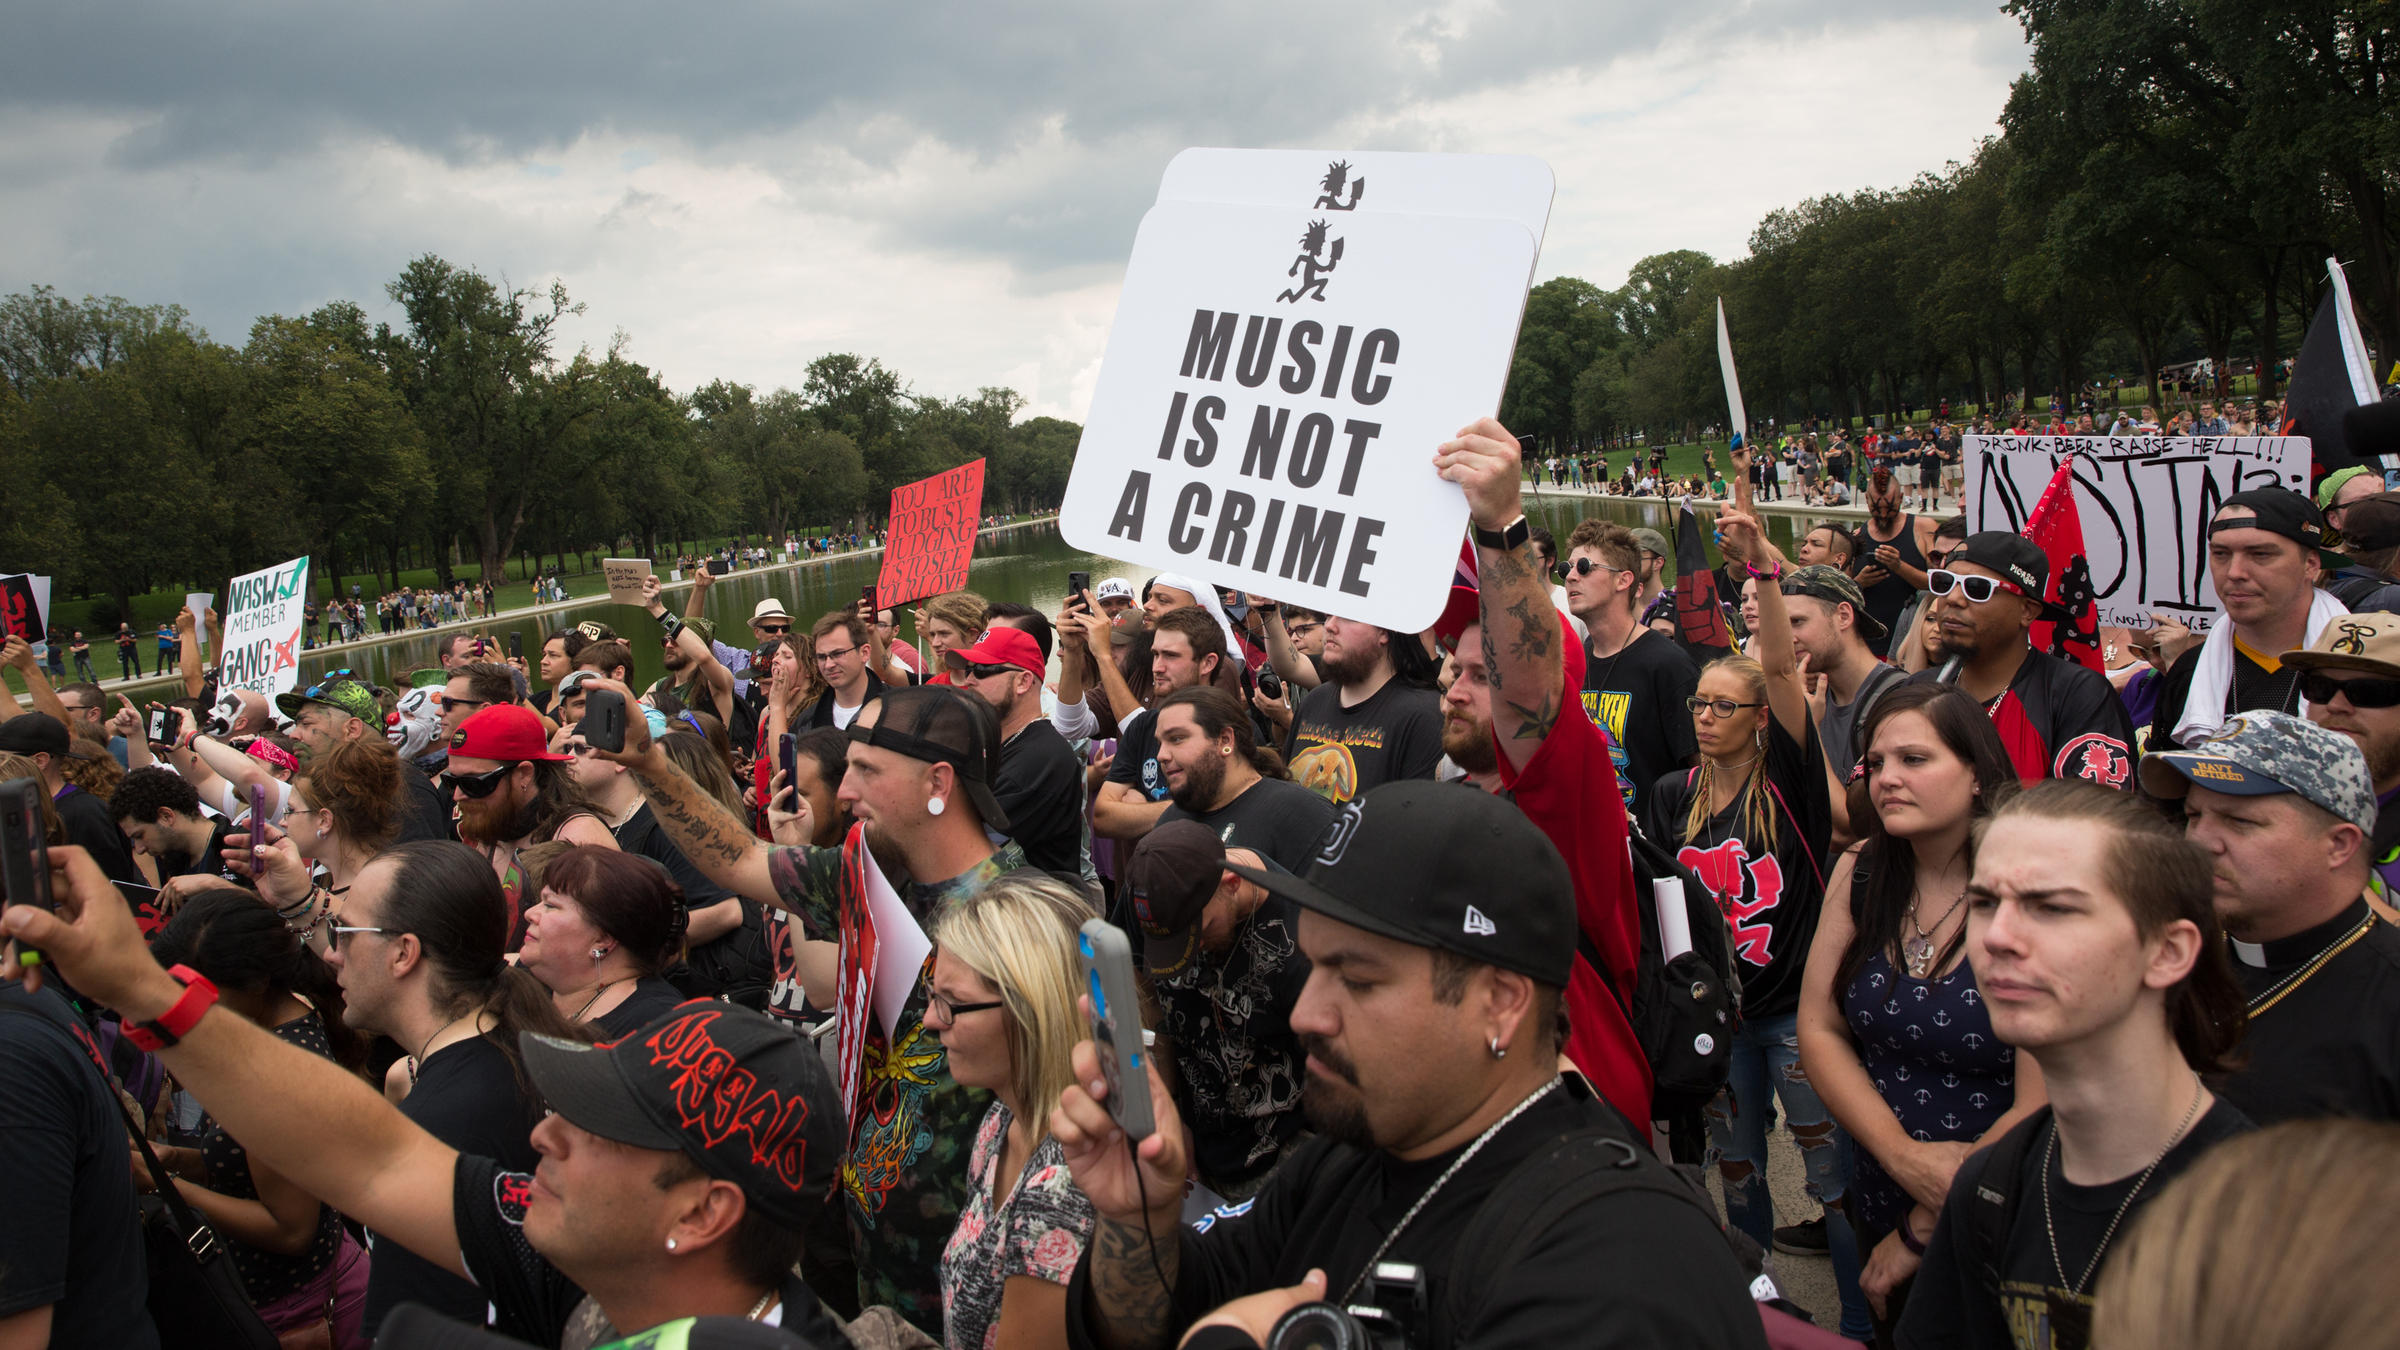 People gather at the Lincoln Memorial in Washington D.C. for Saturday's Juggalo March